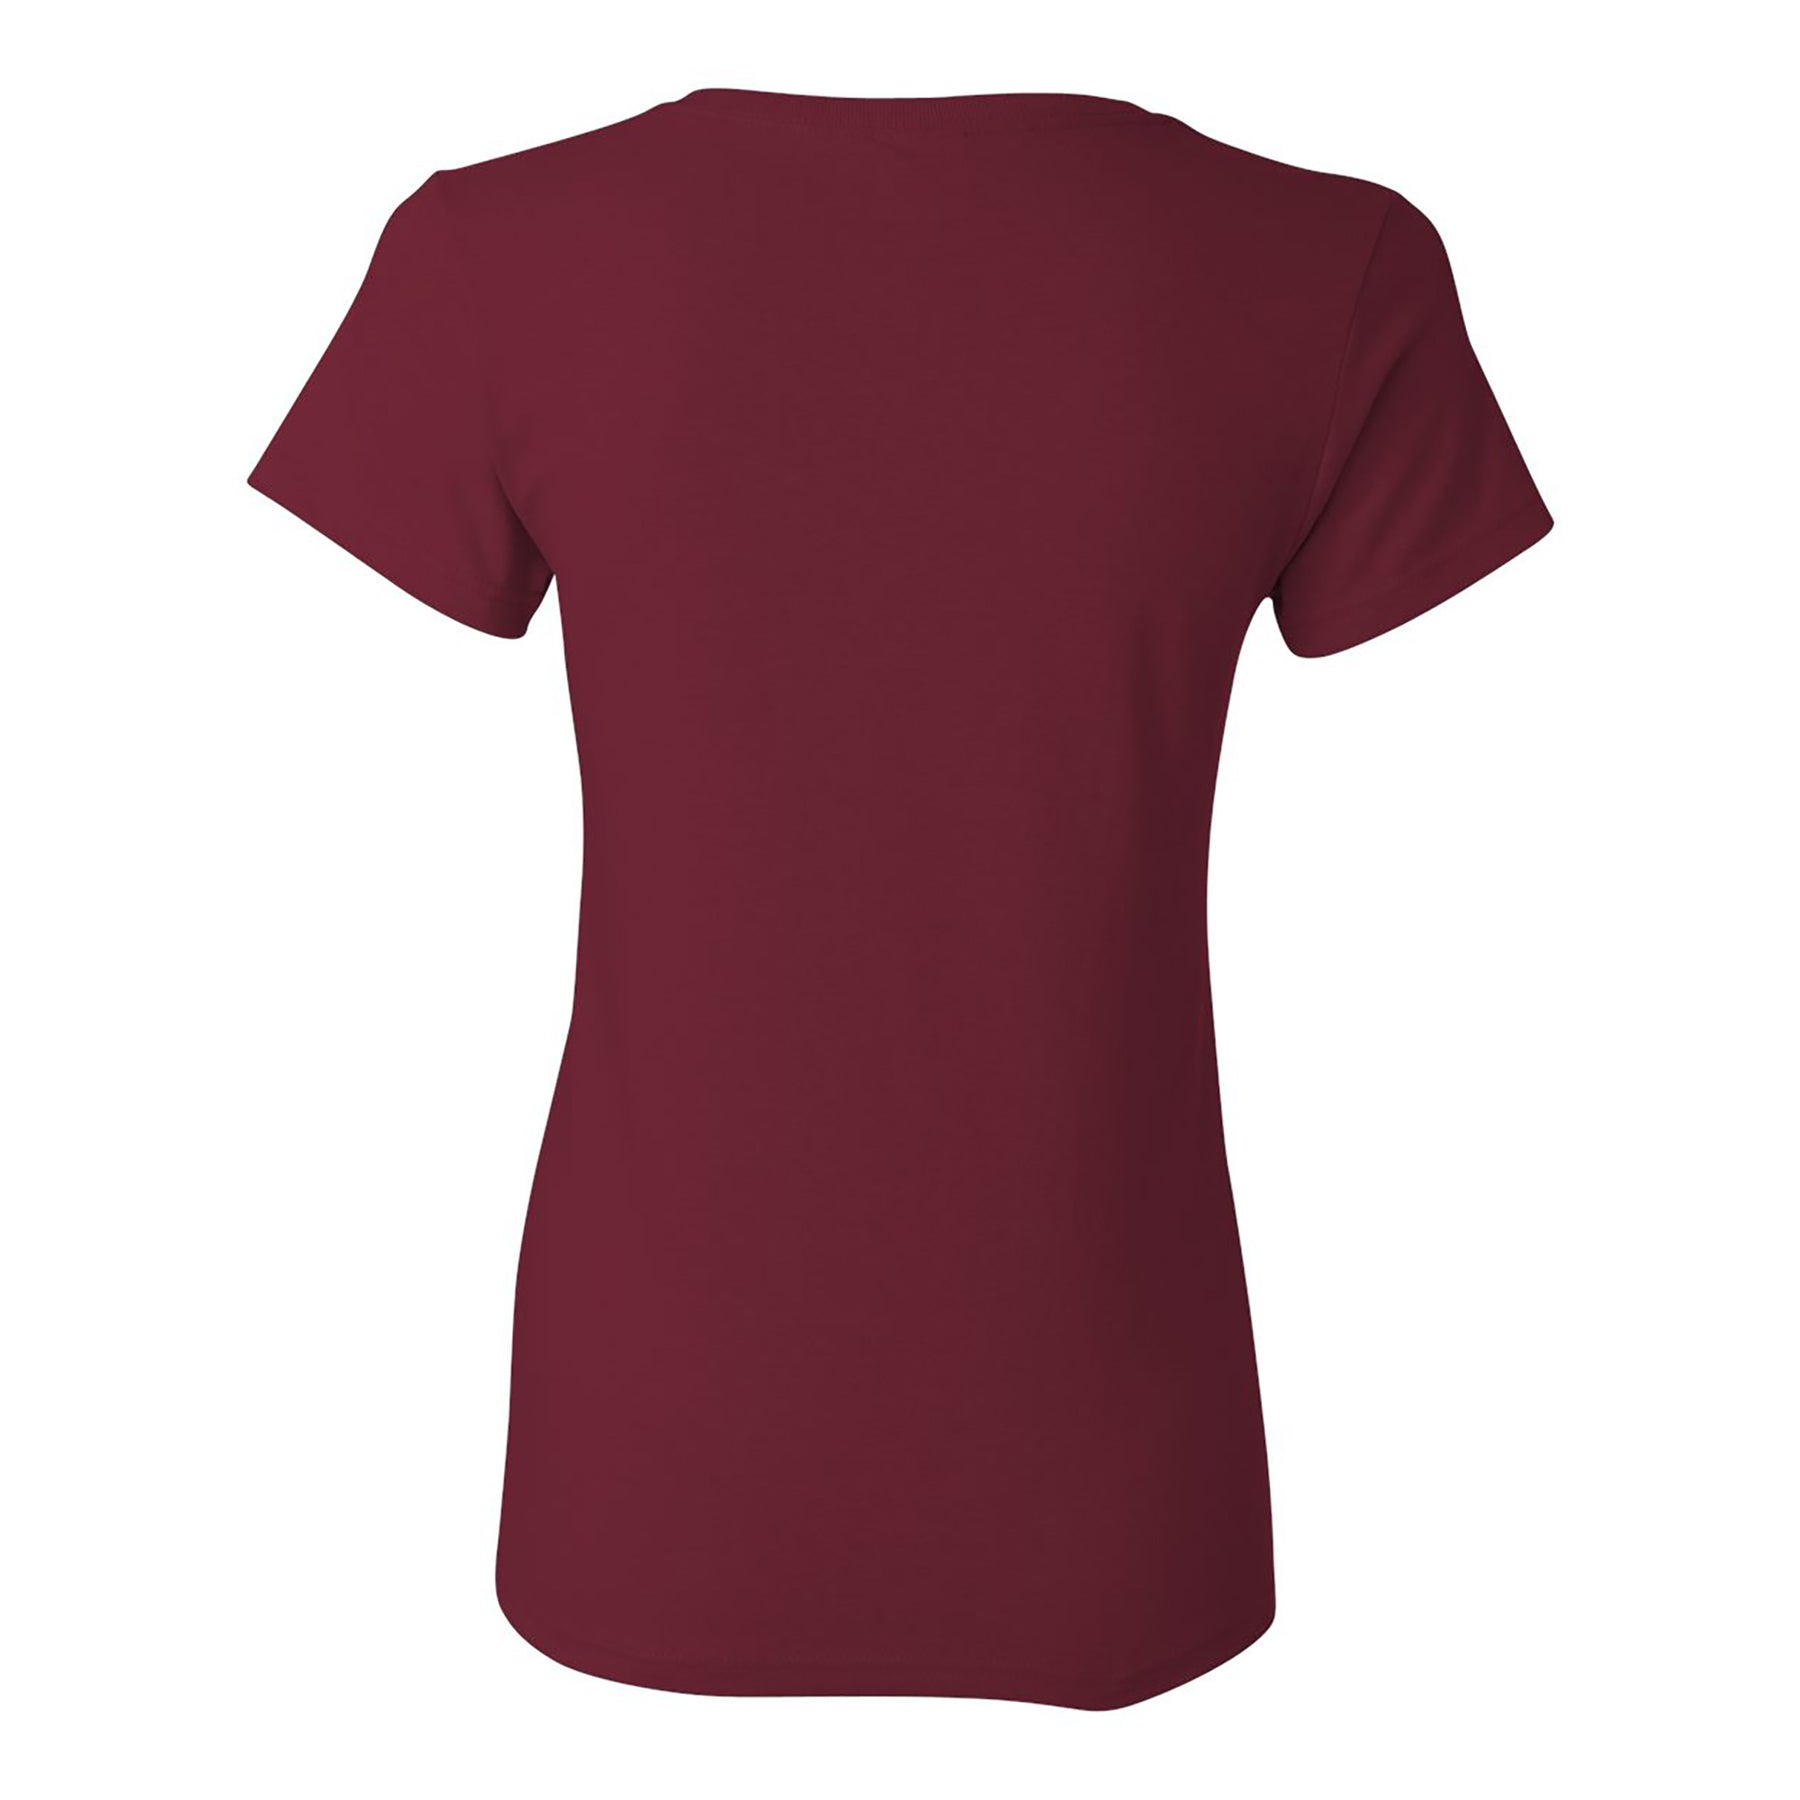 Boston College Basic Block Womens T-Shirt - Garnet - UGP a2b6ad1575dc